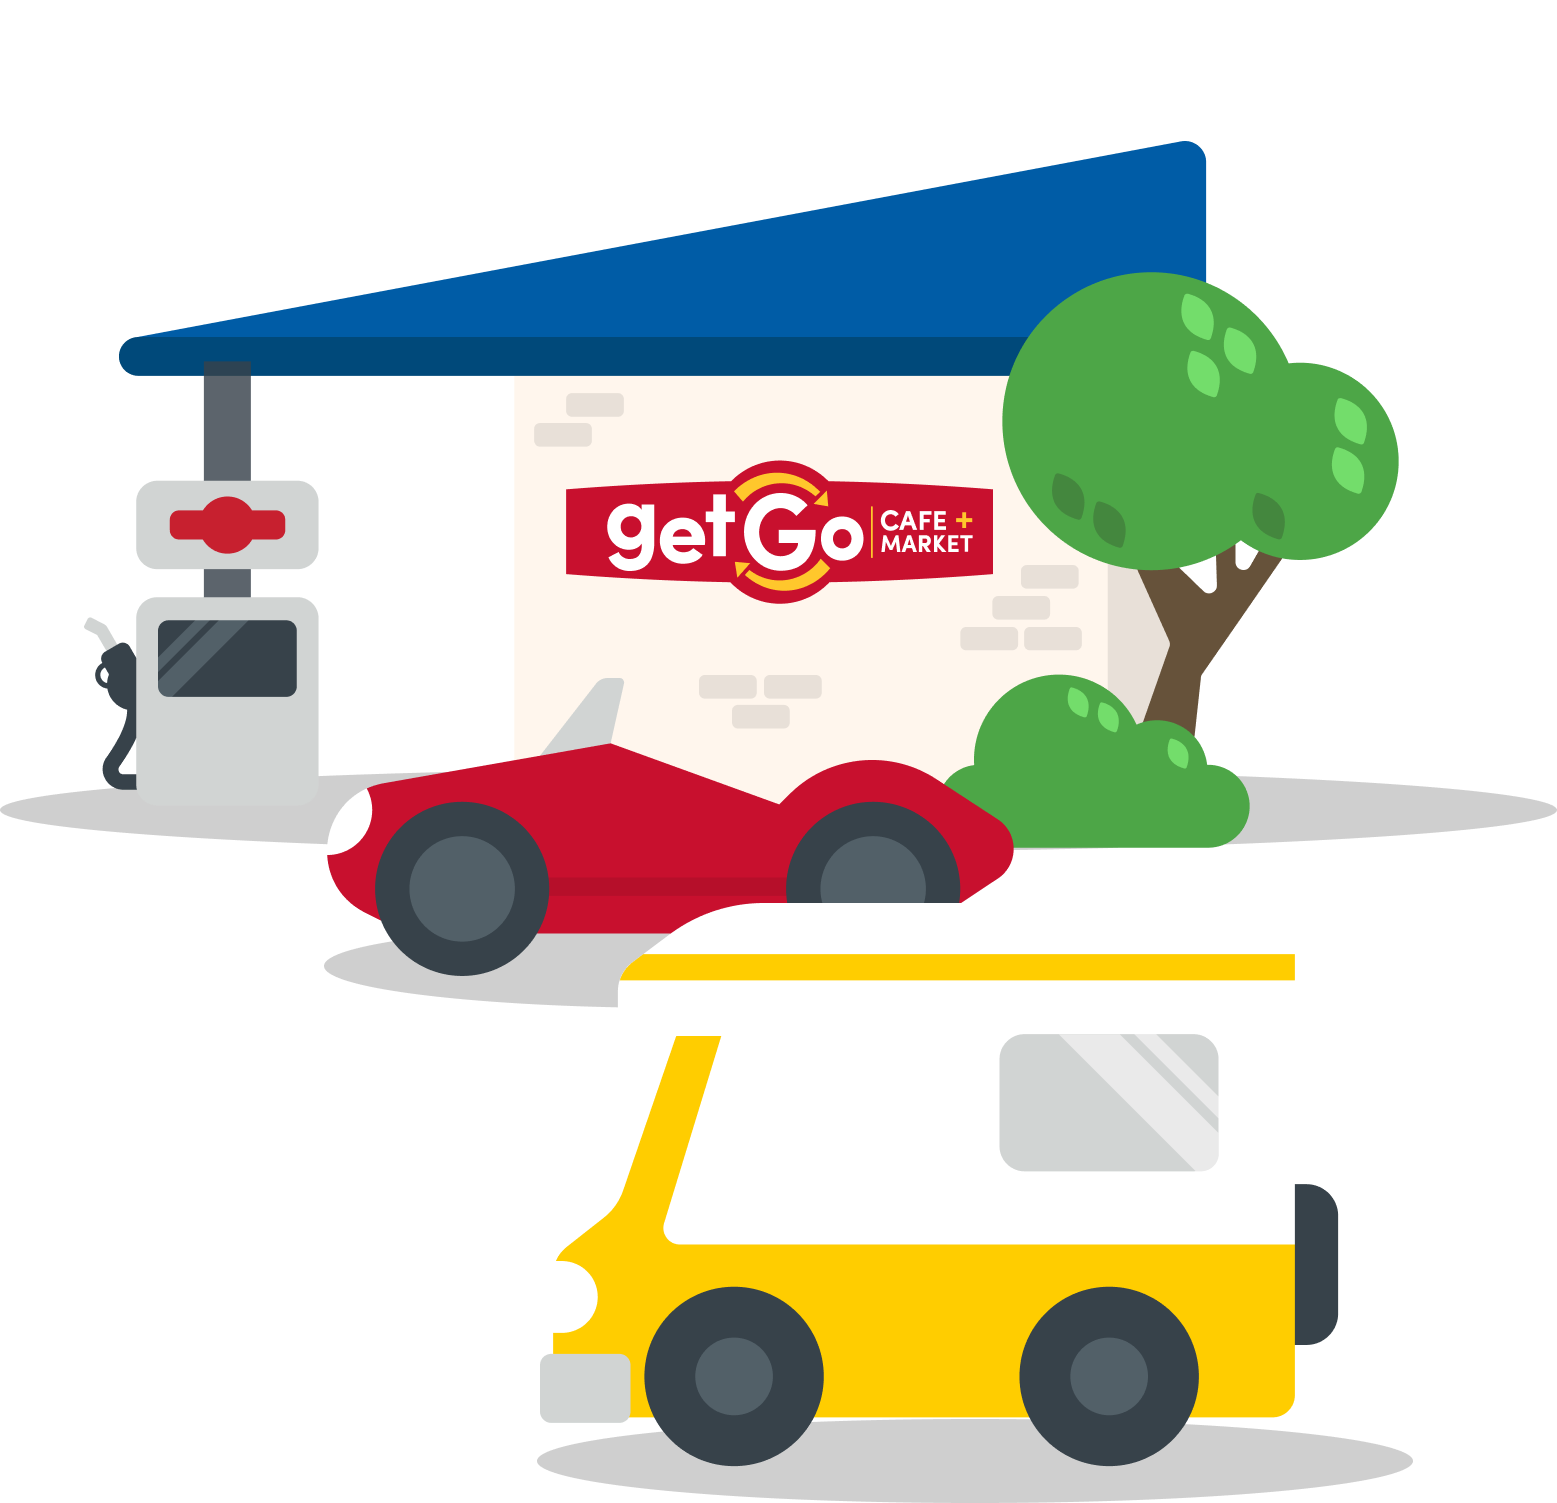 Illustration of GetGo Fuel Station with a blue sky background